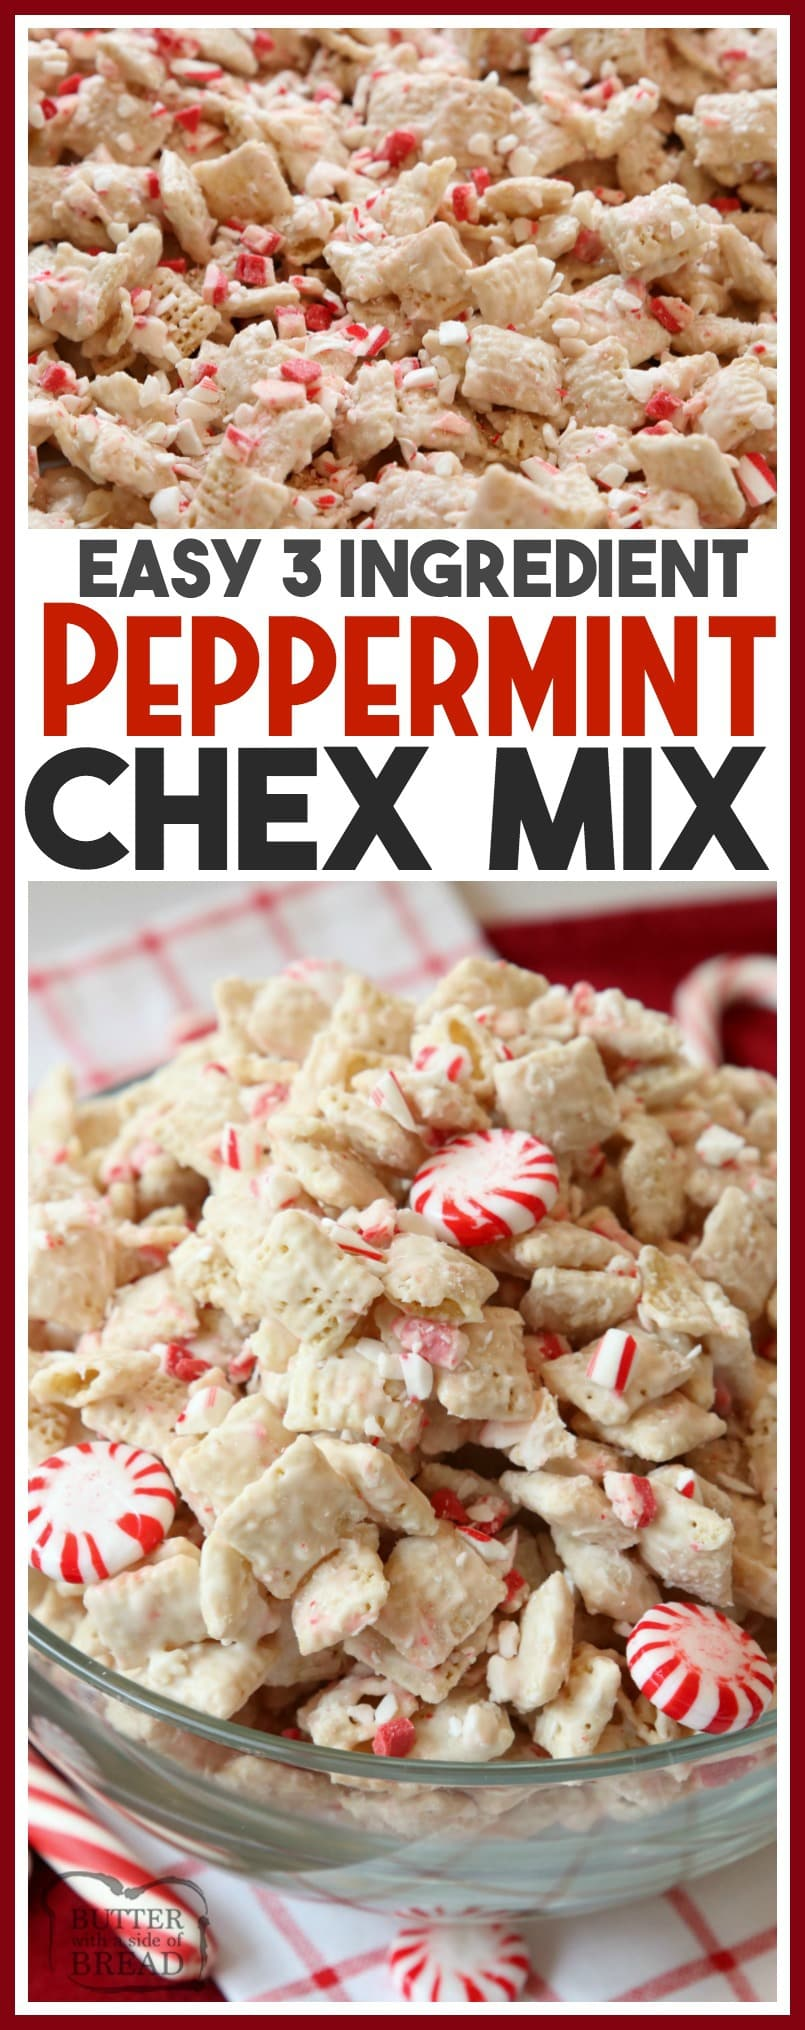 Peppermint Chex Mix made with only 3 ingredients in a few minutes! A simple recipe for a festive, sweet peppermint treat that's perfect for holiday parties.